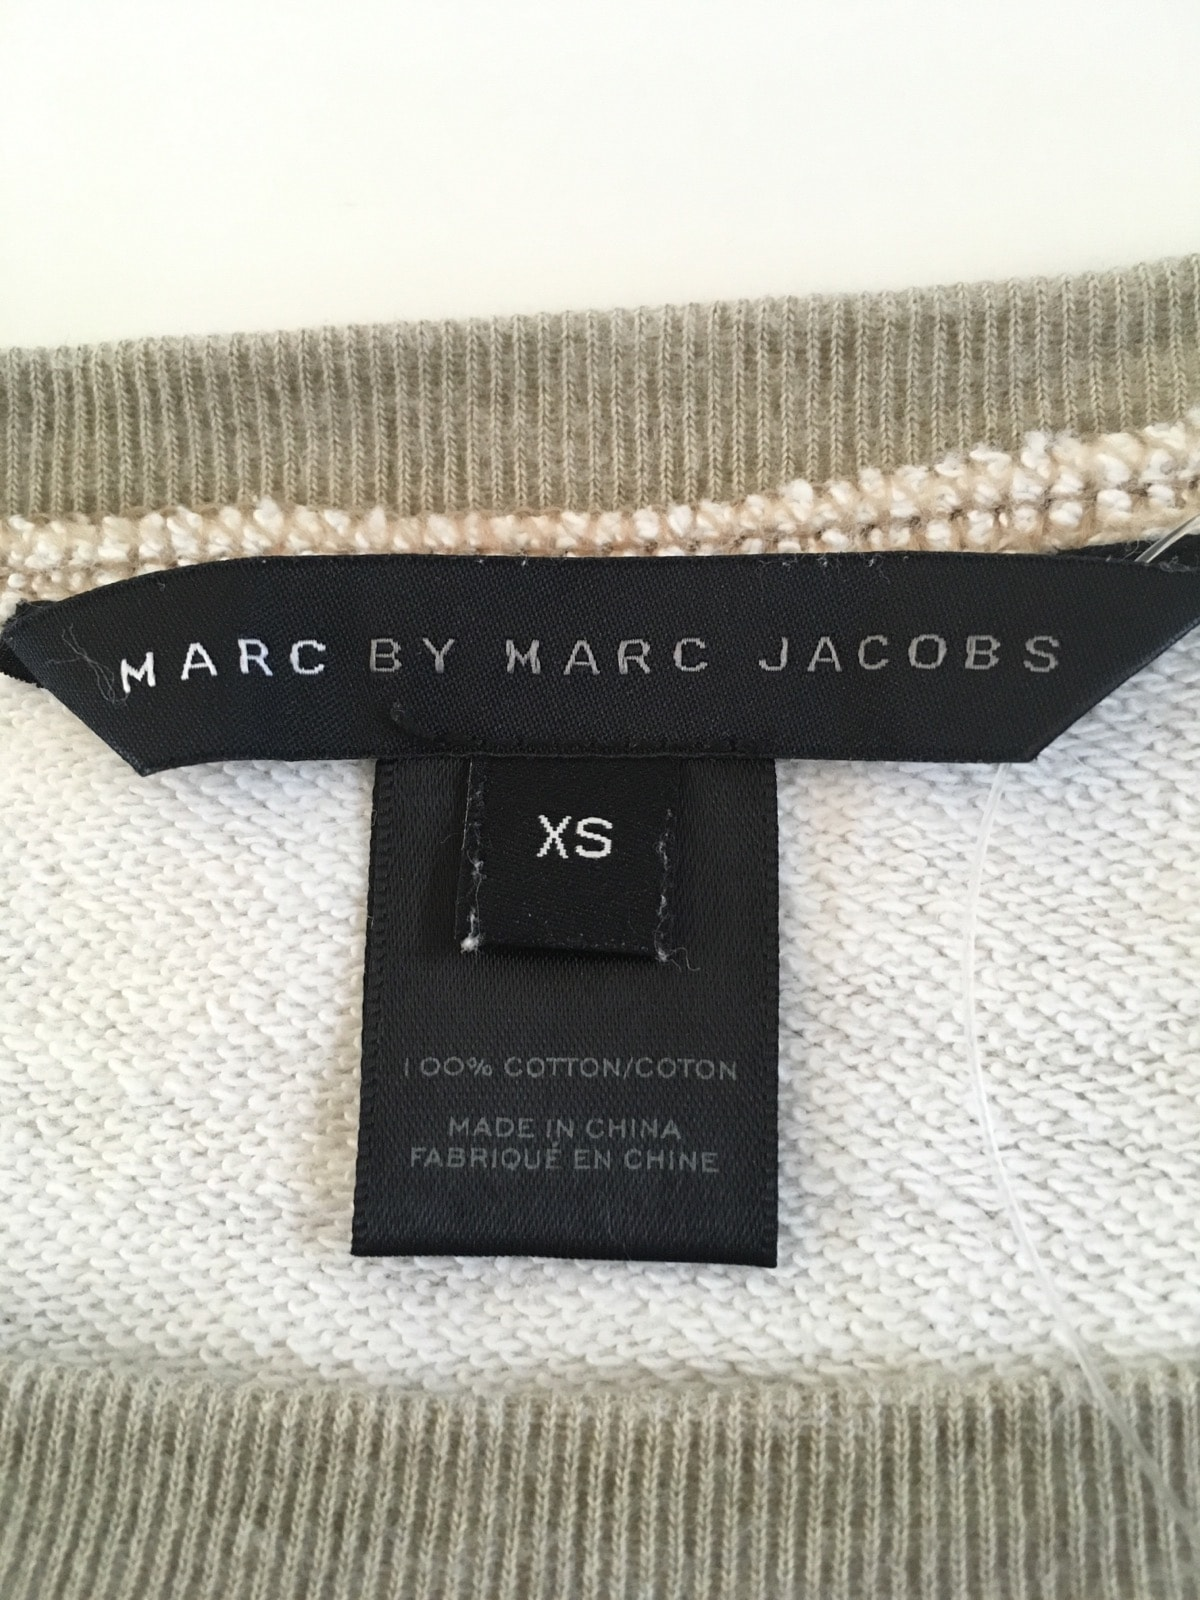 MARC BY MARC JACOBS(マークバイマークジェイコブス)のトレーナー